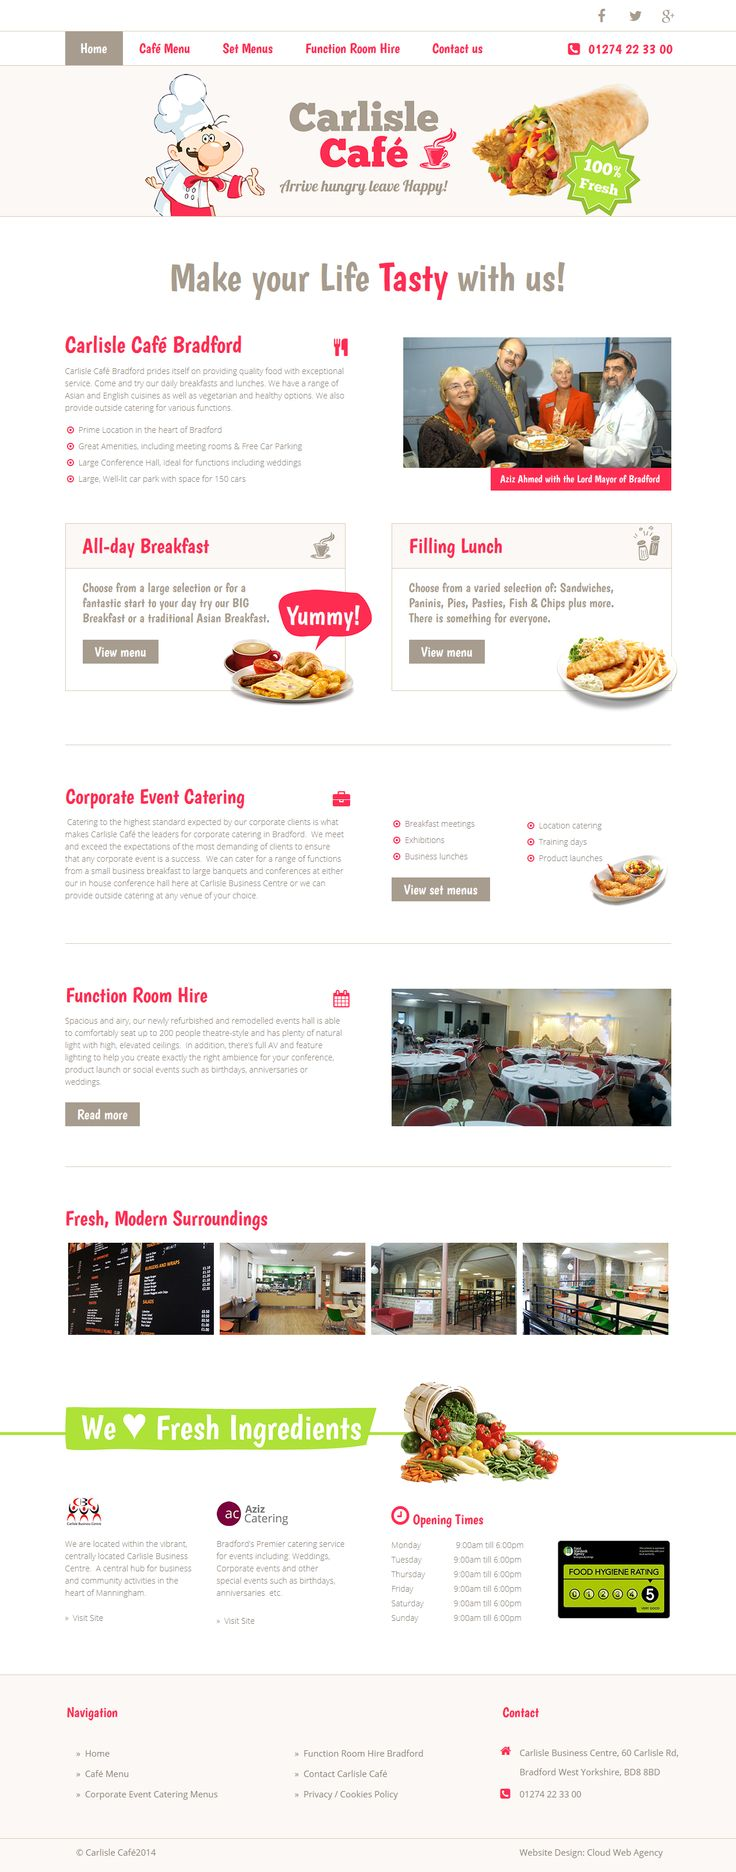 Website design for Carlisle Cafe, fun modern website with a mobile version of the site as well. http://www.carlislecafe.co.uk/